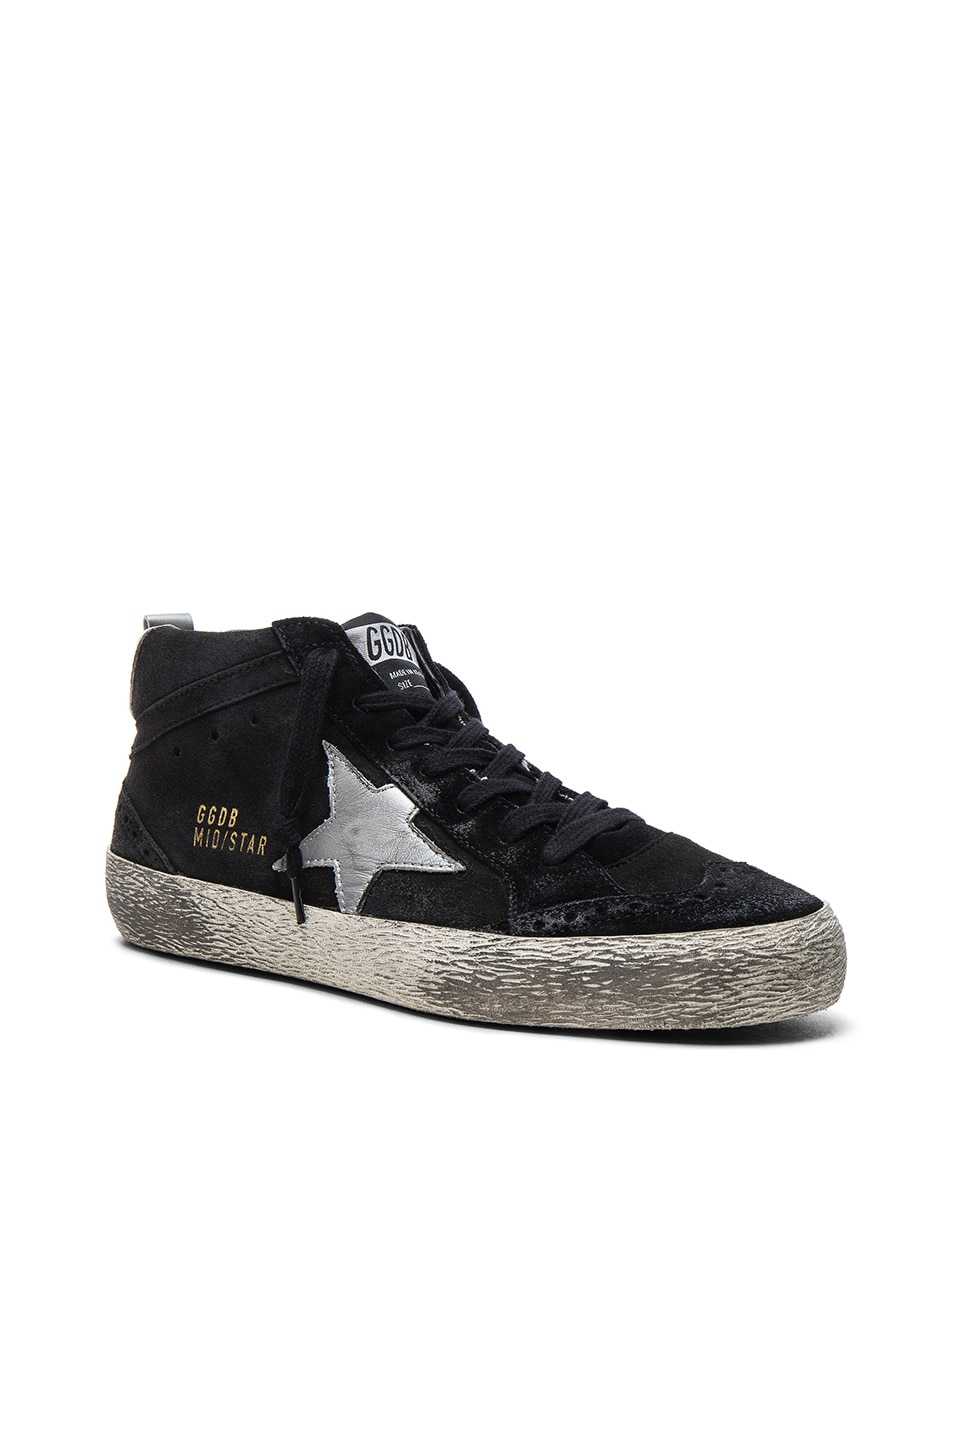 Image 2 of Golden Goose Suede Mid Star Sneakers in Black & Silver